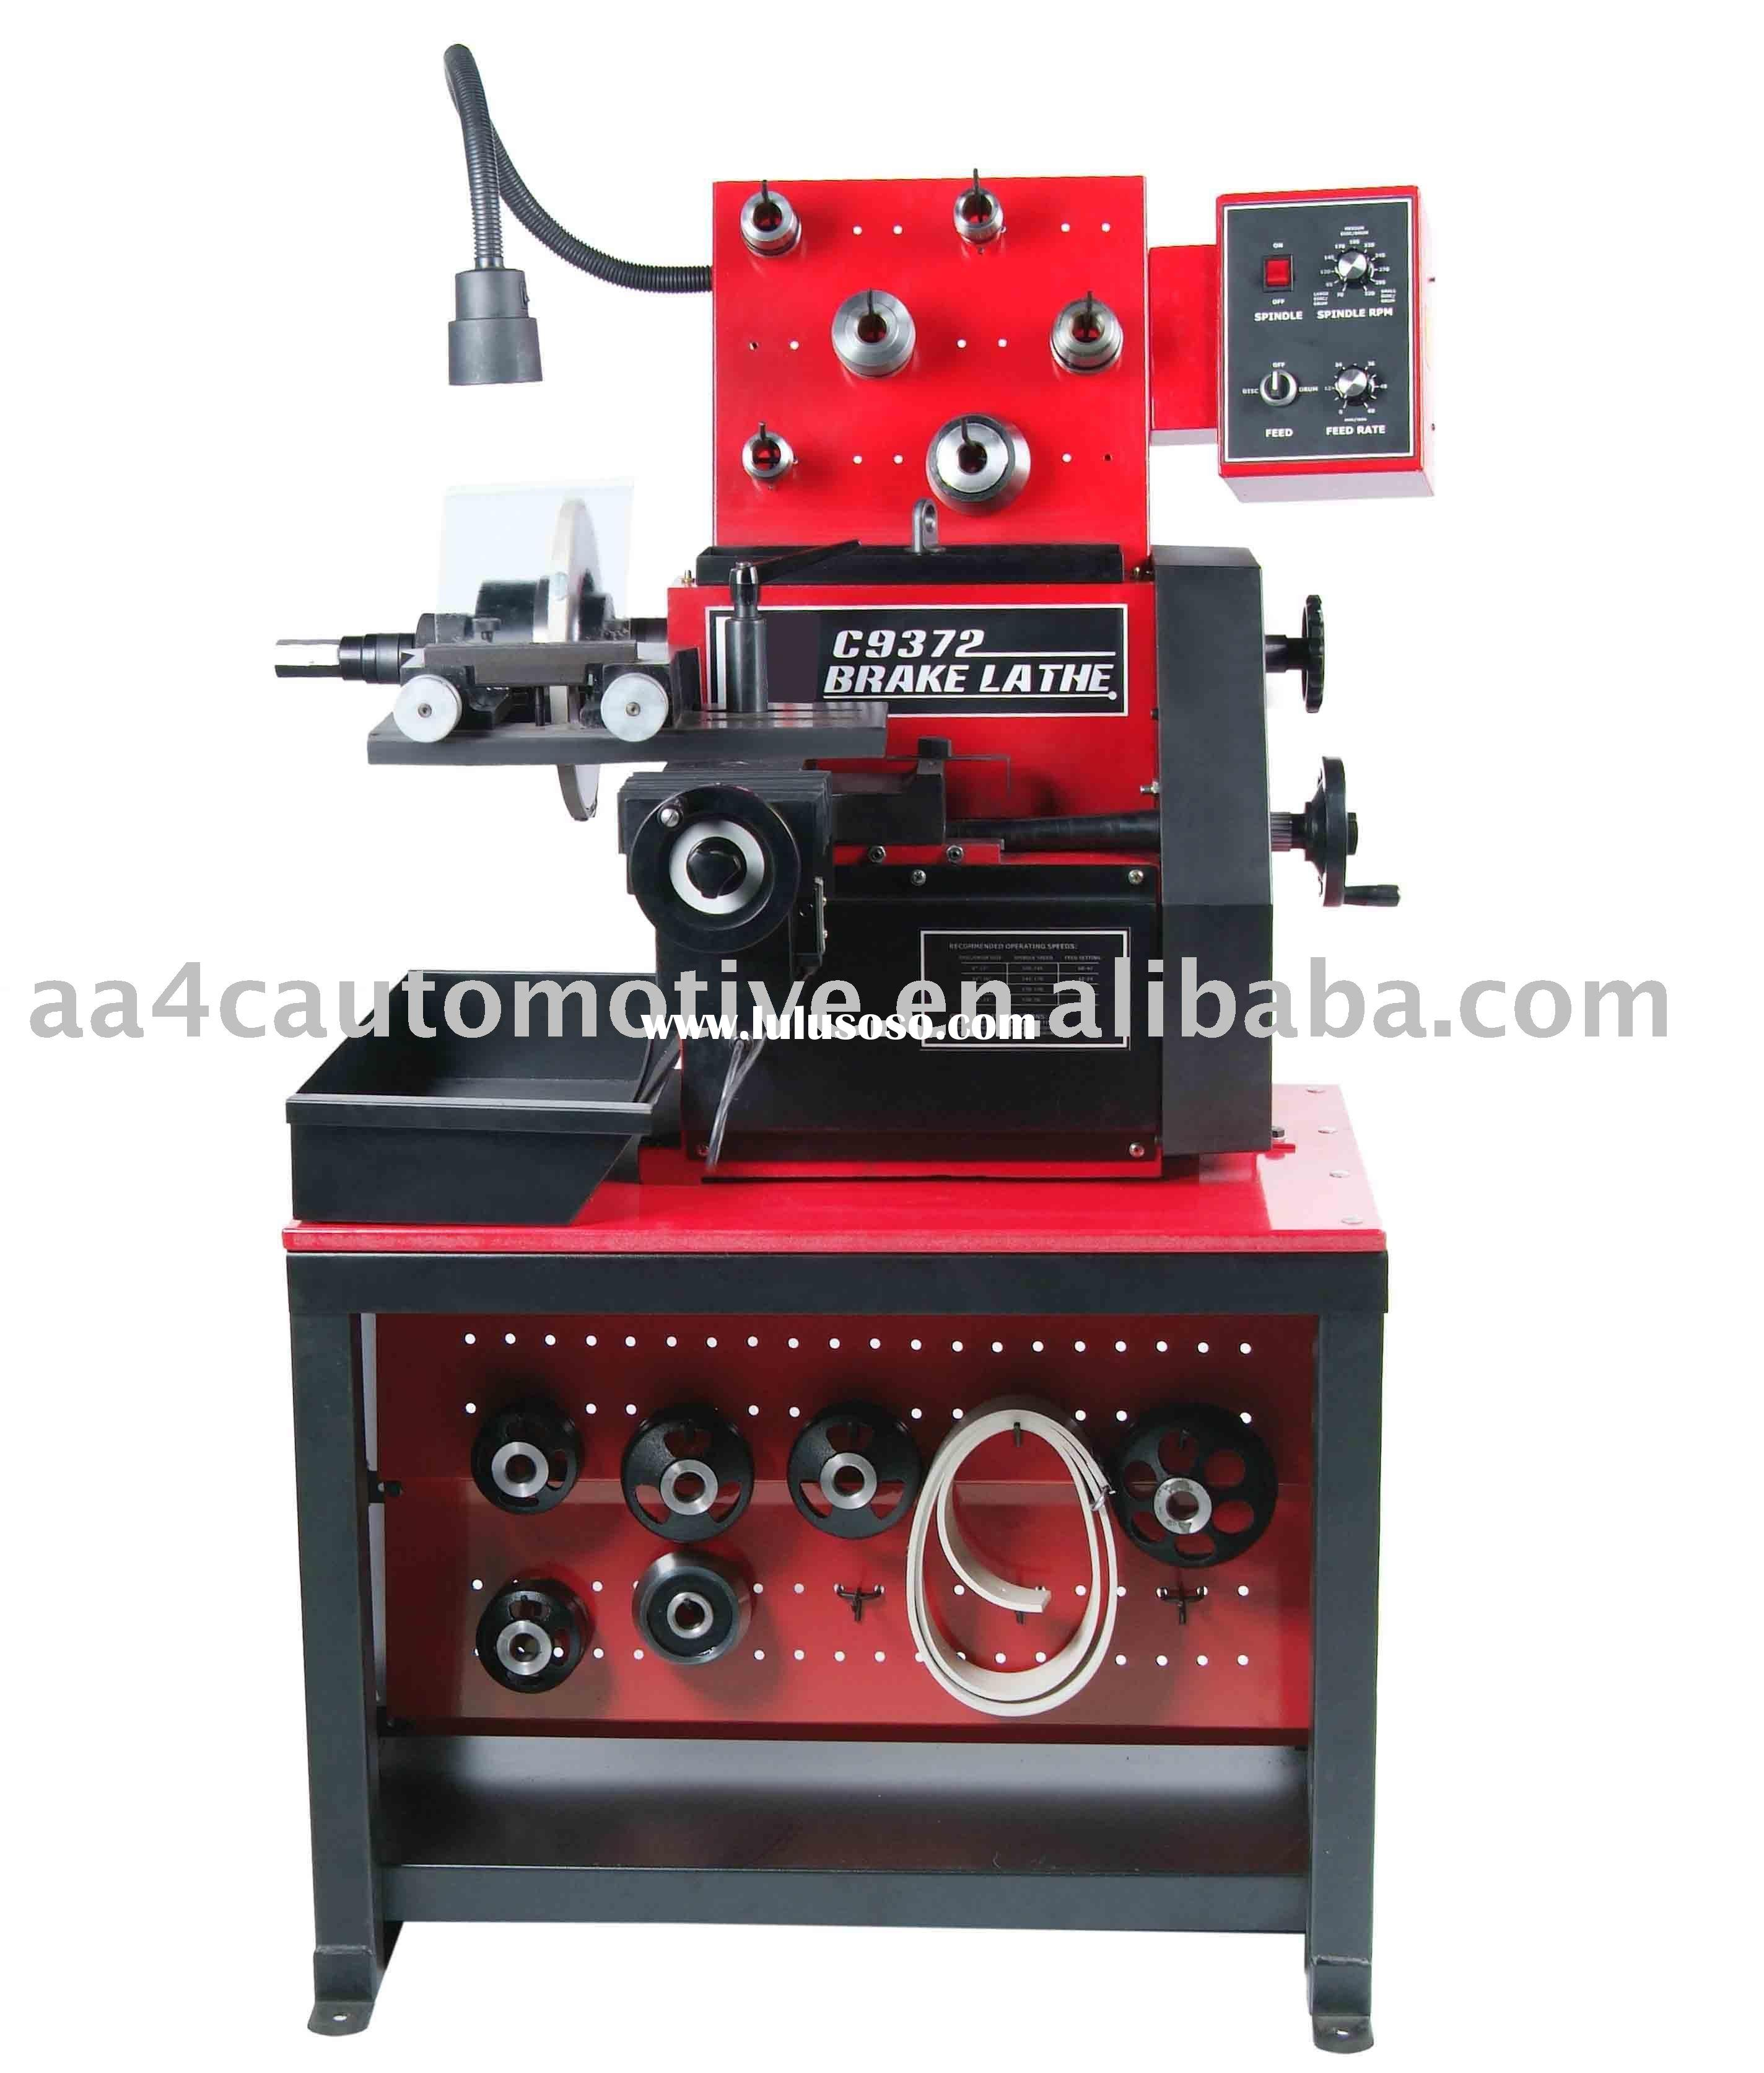 On car brake lathe machine